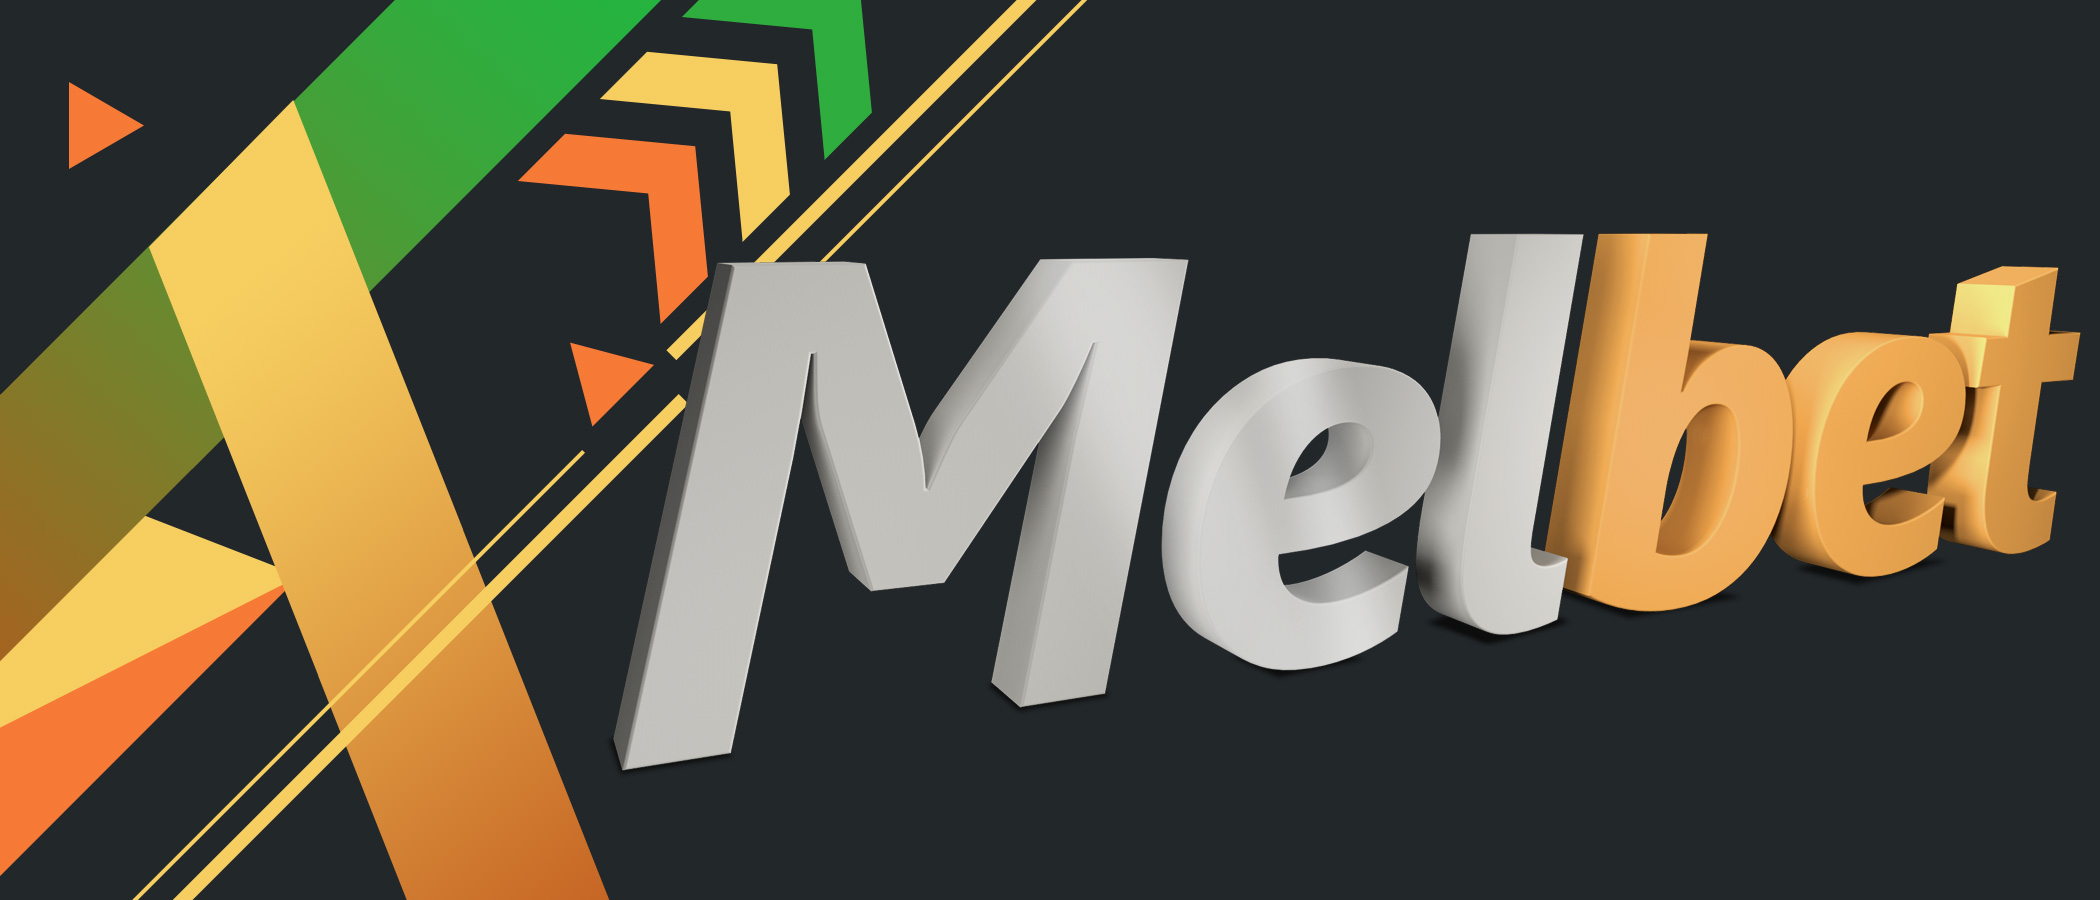 How to Participate in Live IPL Betting with Melbet India?